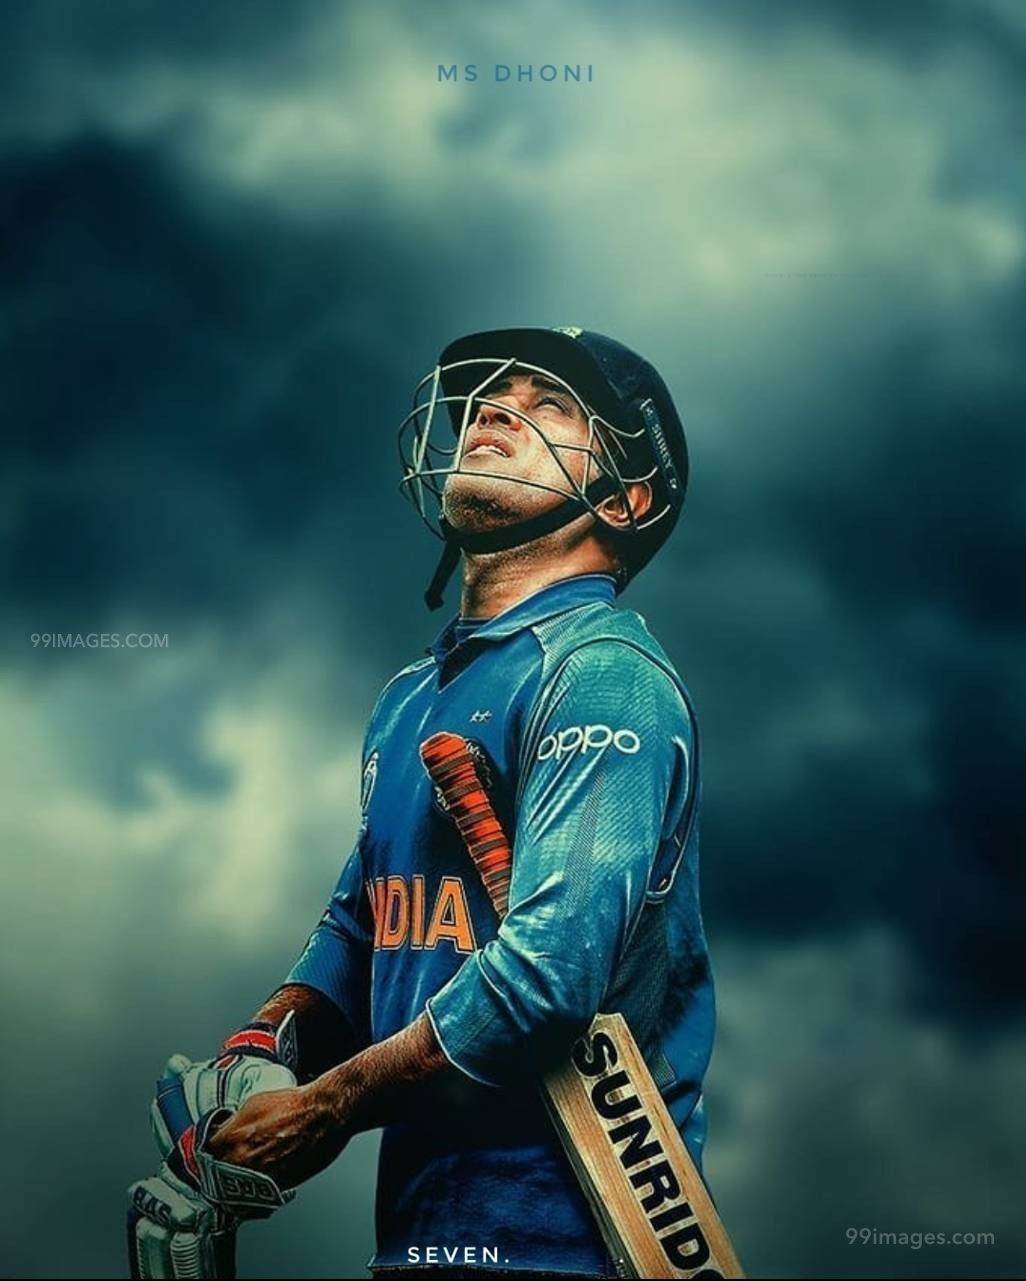 MS Dhoni 7 Looking at Sky Drawing Image / Wallpaper HD (ms dhoni, msd, captian, india, cricketer, wicket keeper) (41821) - MS Dhoni